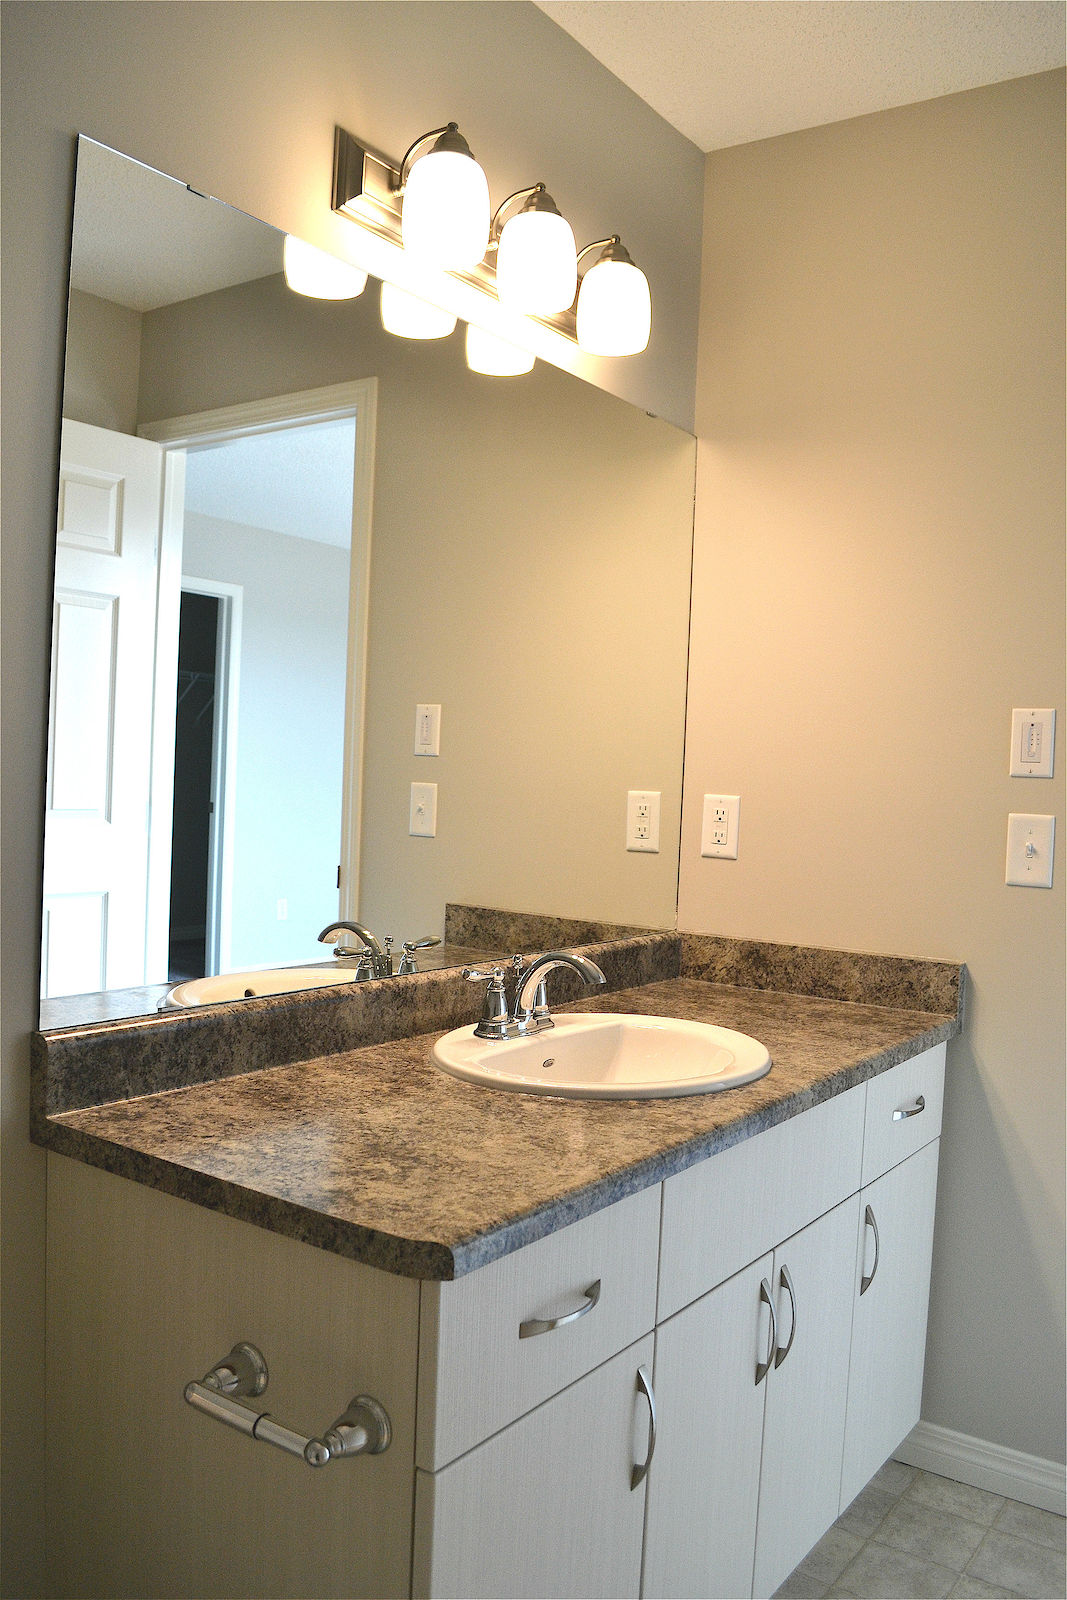 Ensuite Bathroom Edmonton edmonton house for rent | allard, sw | brand new, 1450 sq,ft 2